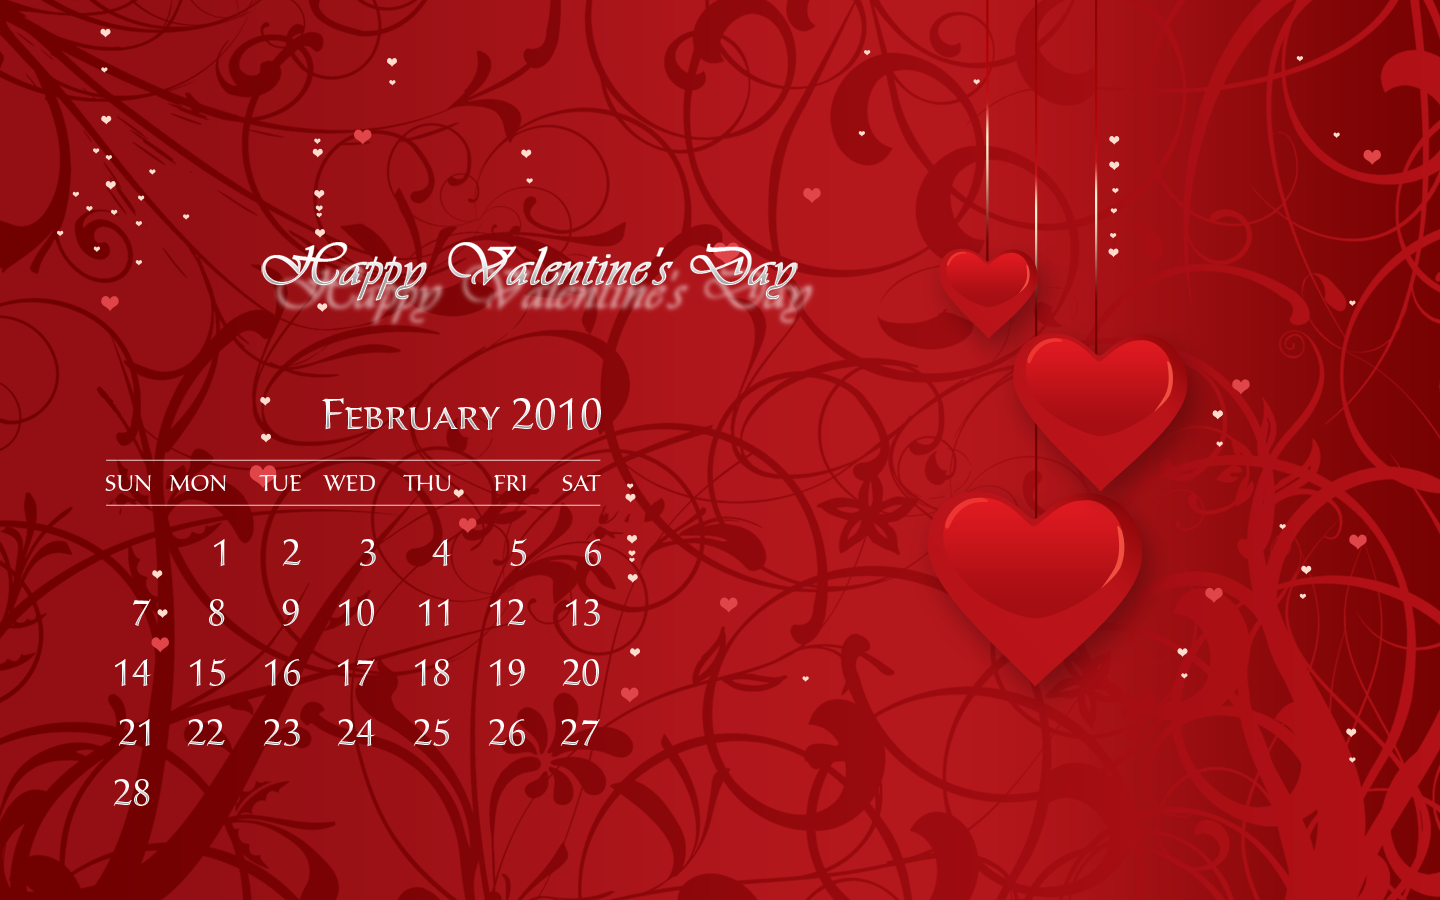 february-2010-happy-valentines-day-calendar-1440x900 Valentine S Day Newsletter Templates Free on free valentine's day ticket template, free templates for valentine's day, cardiac newsletter template, valentine letter template, valentine themed newsletter template,